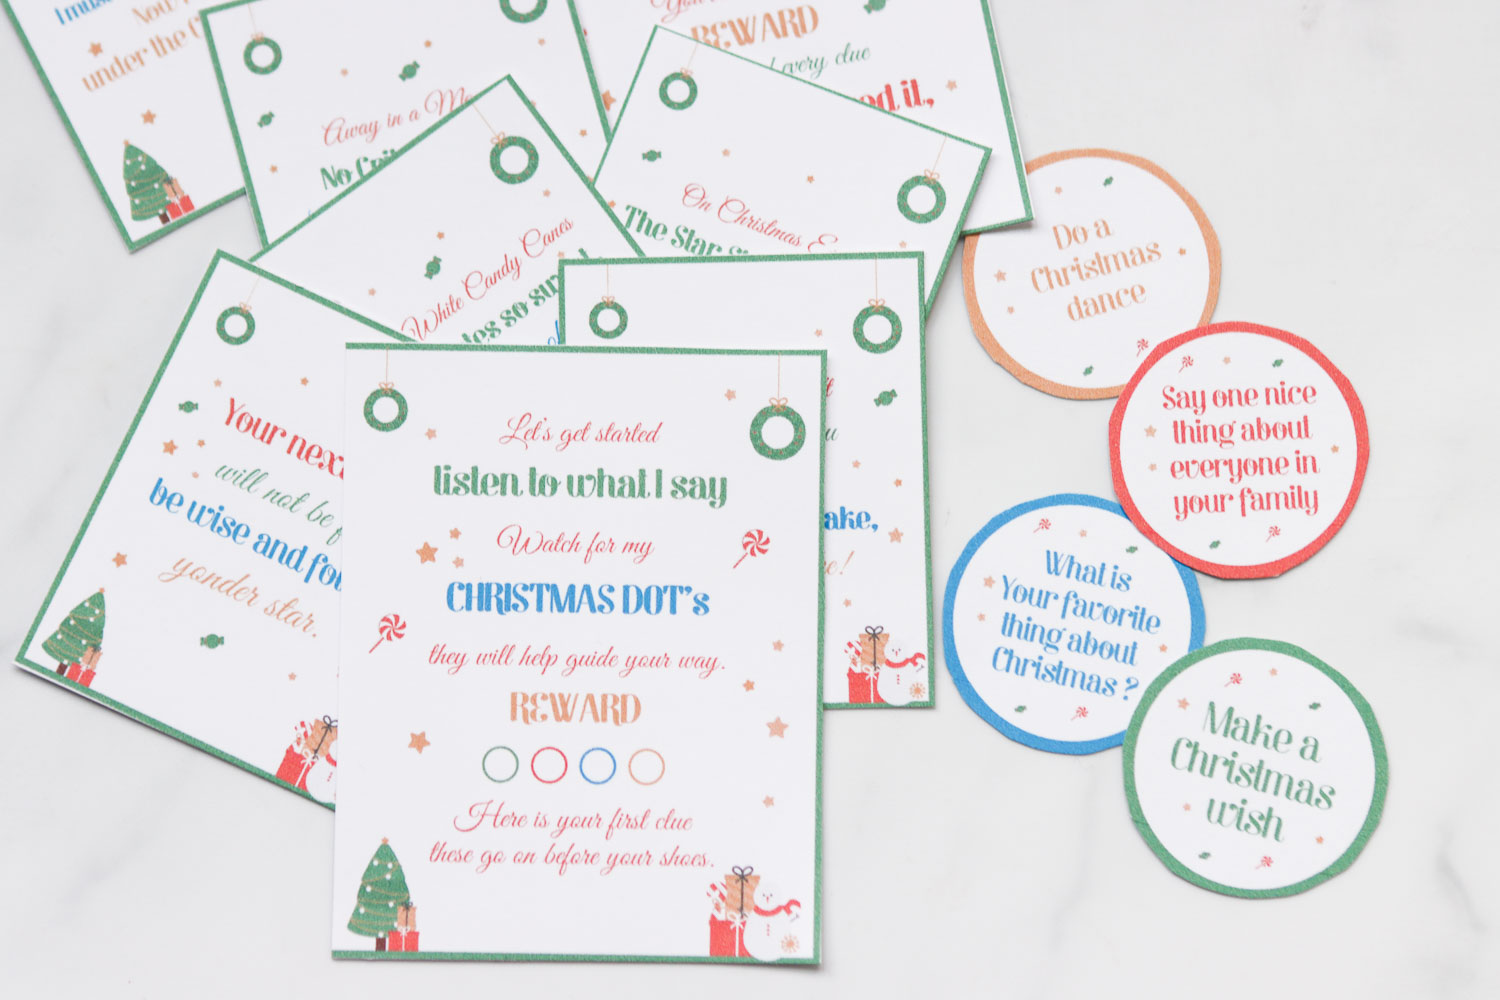 All the free printable clues cut out and on a white surface,